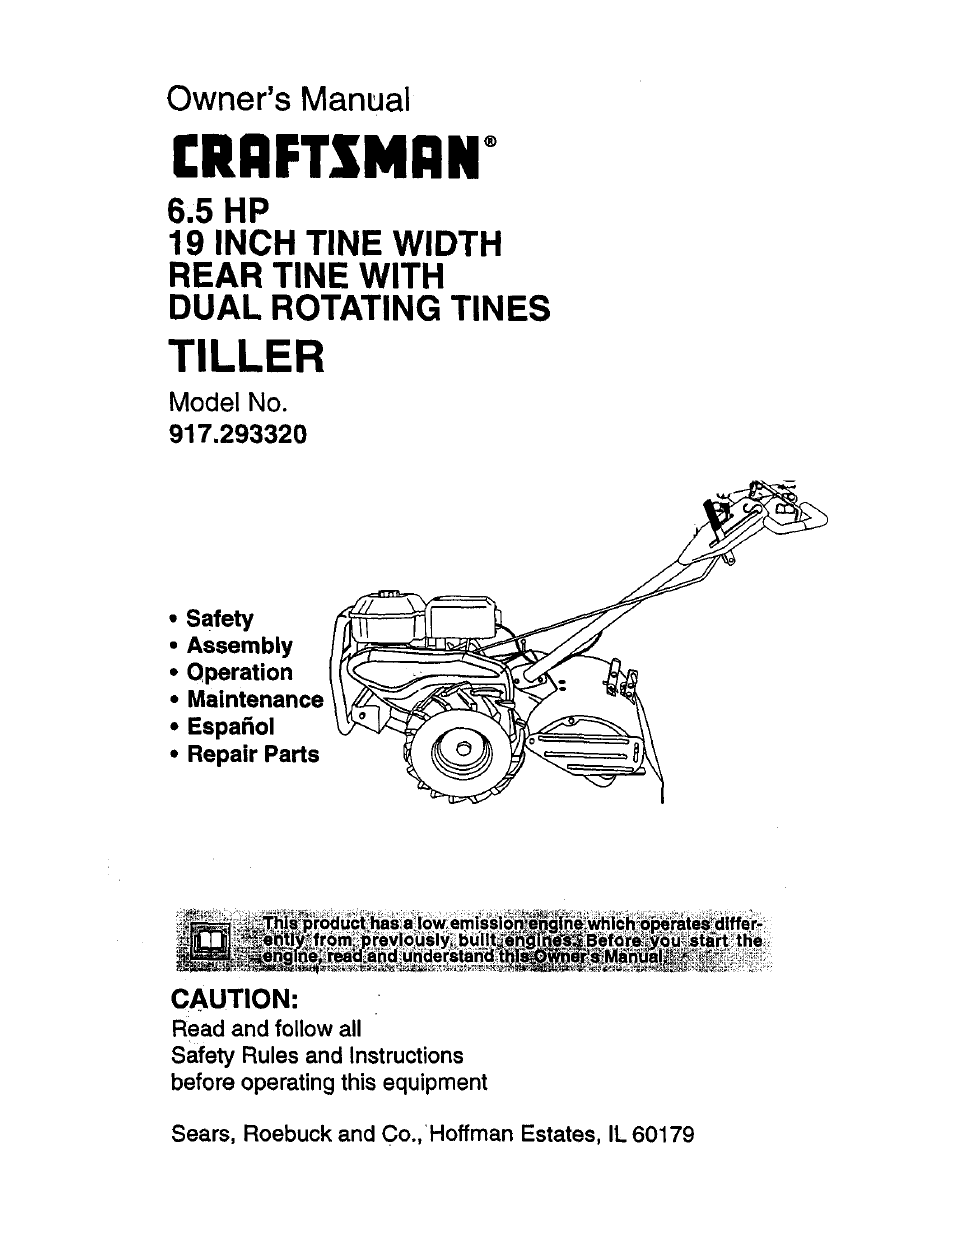 Craftsman 917. 293320 user manual | 36 pages.